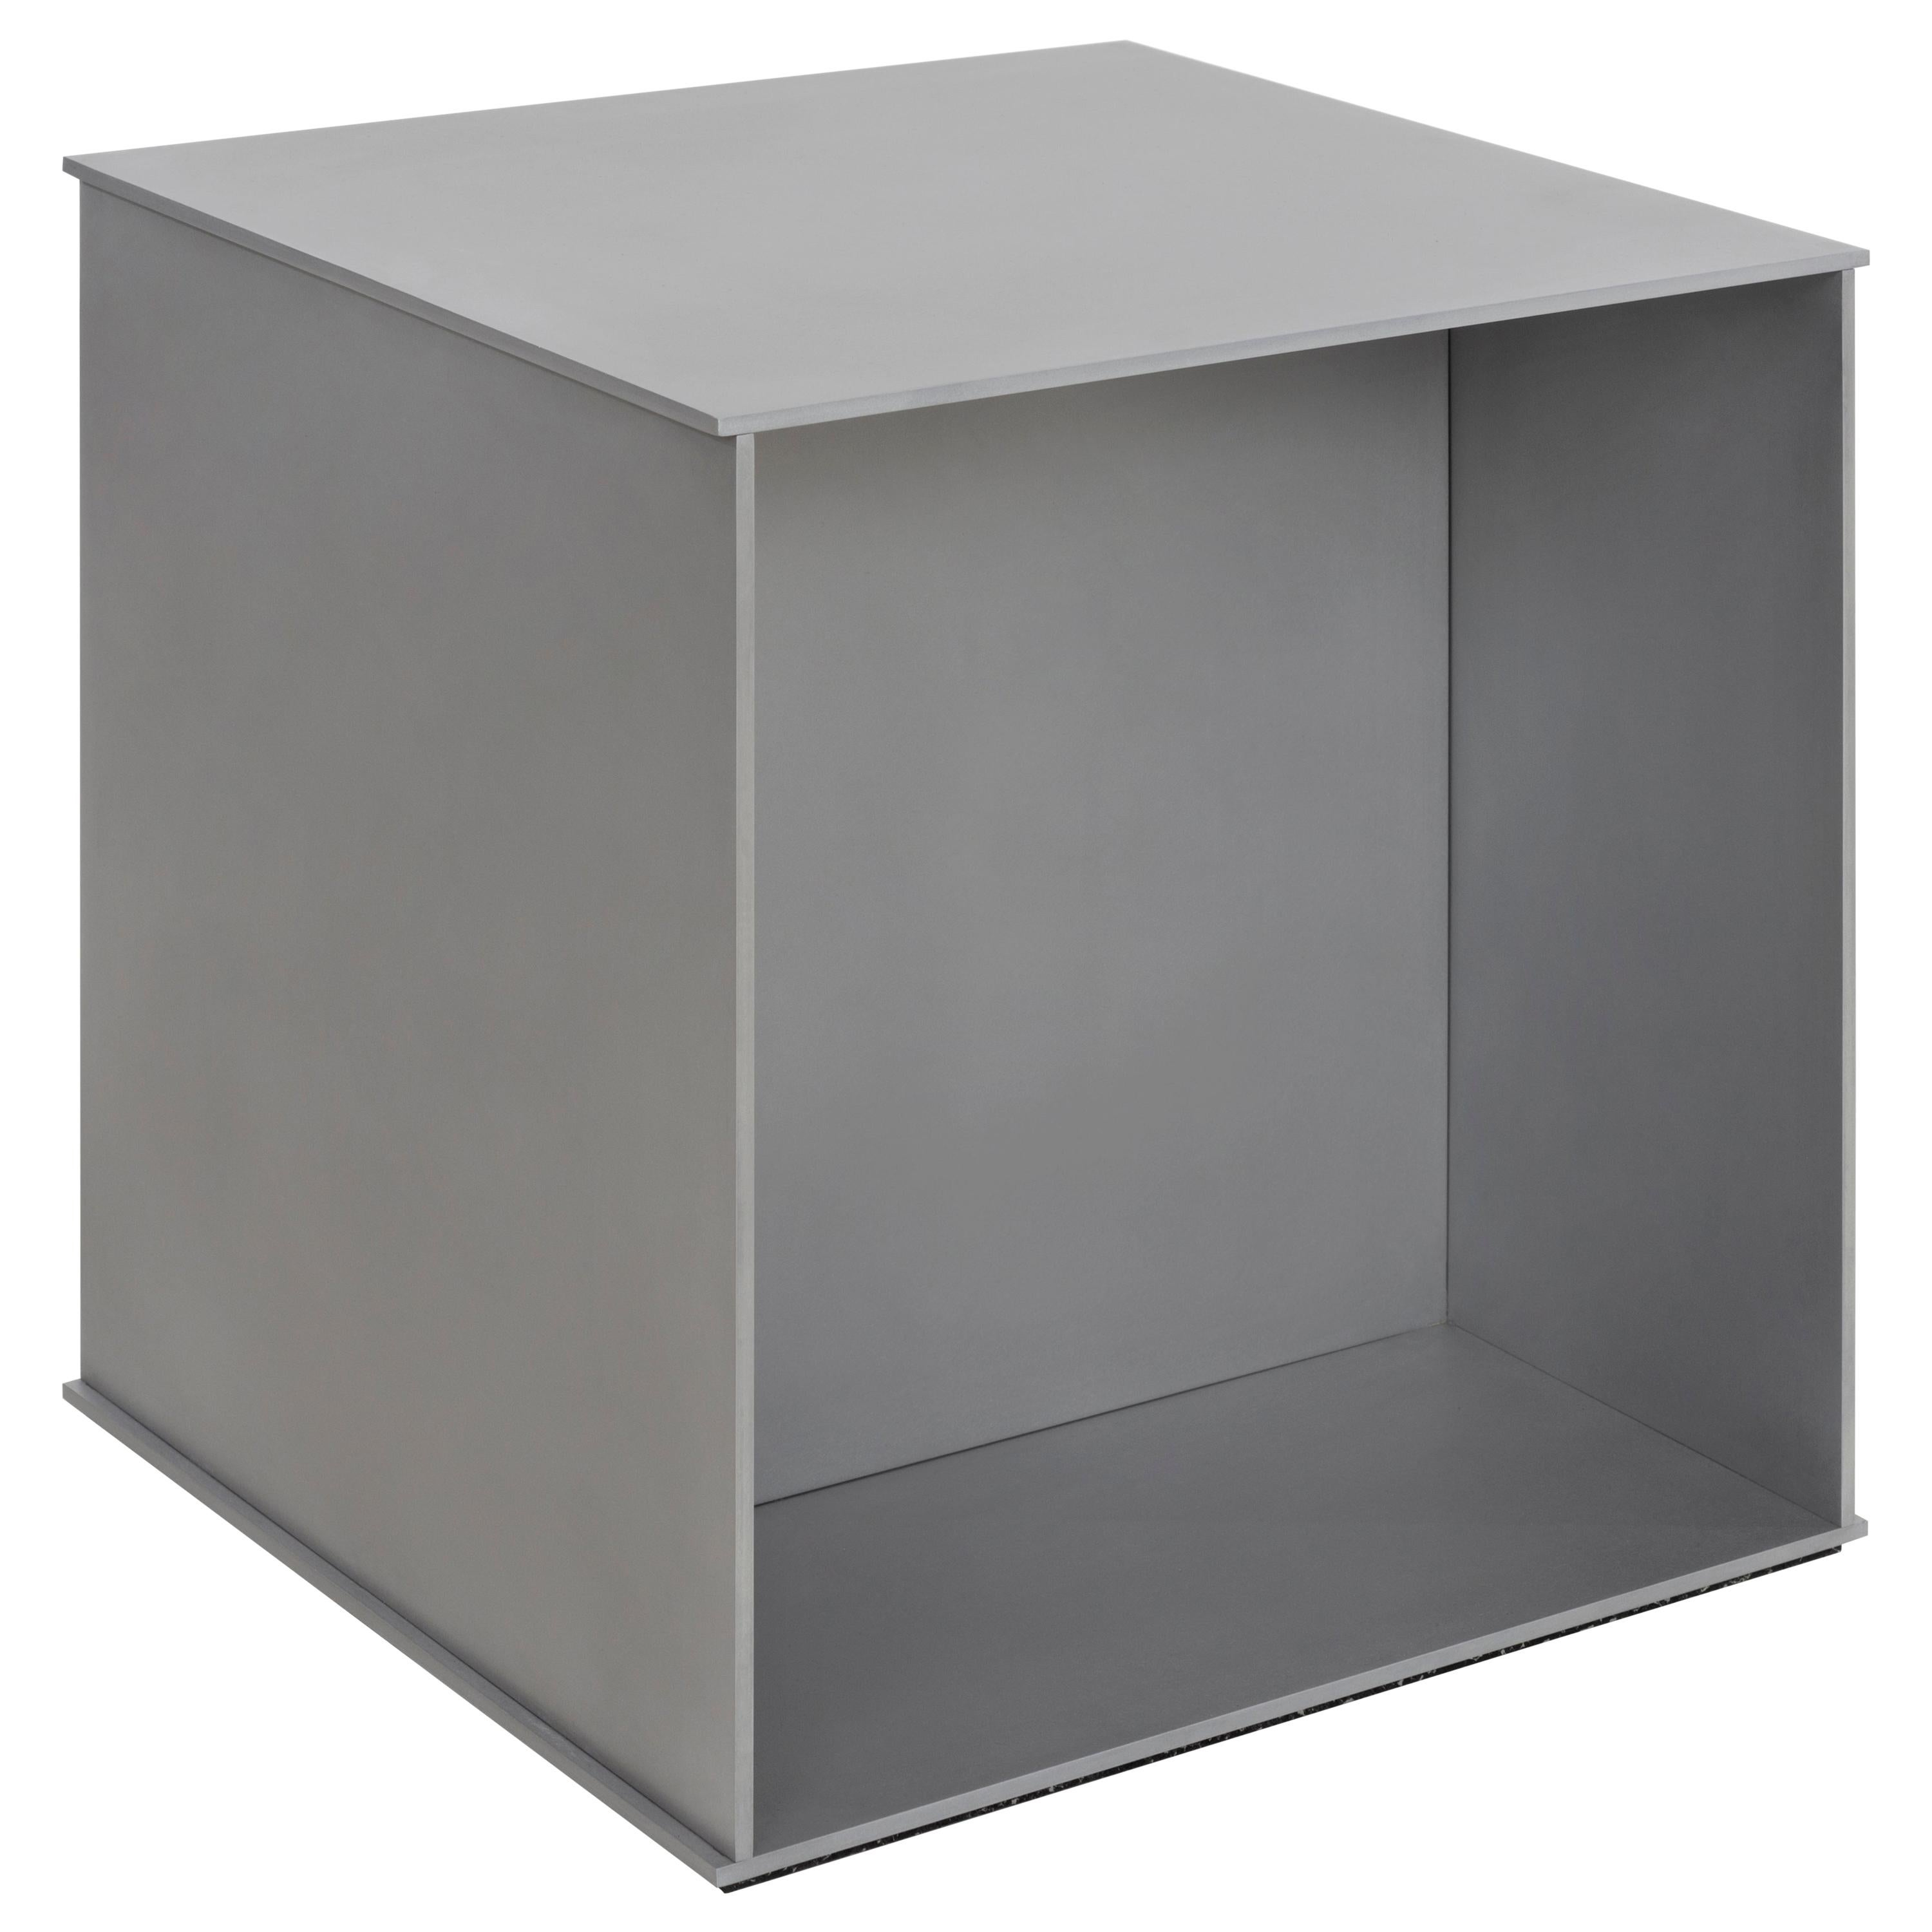 Cube Side Table in Waxed Aluminum Plate by Jonathan Nesci